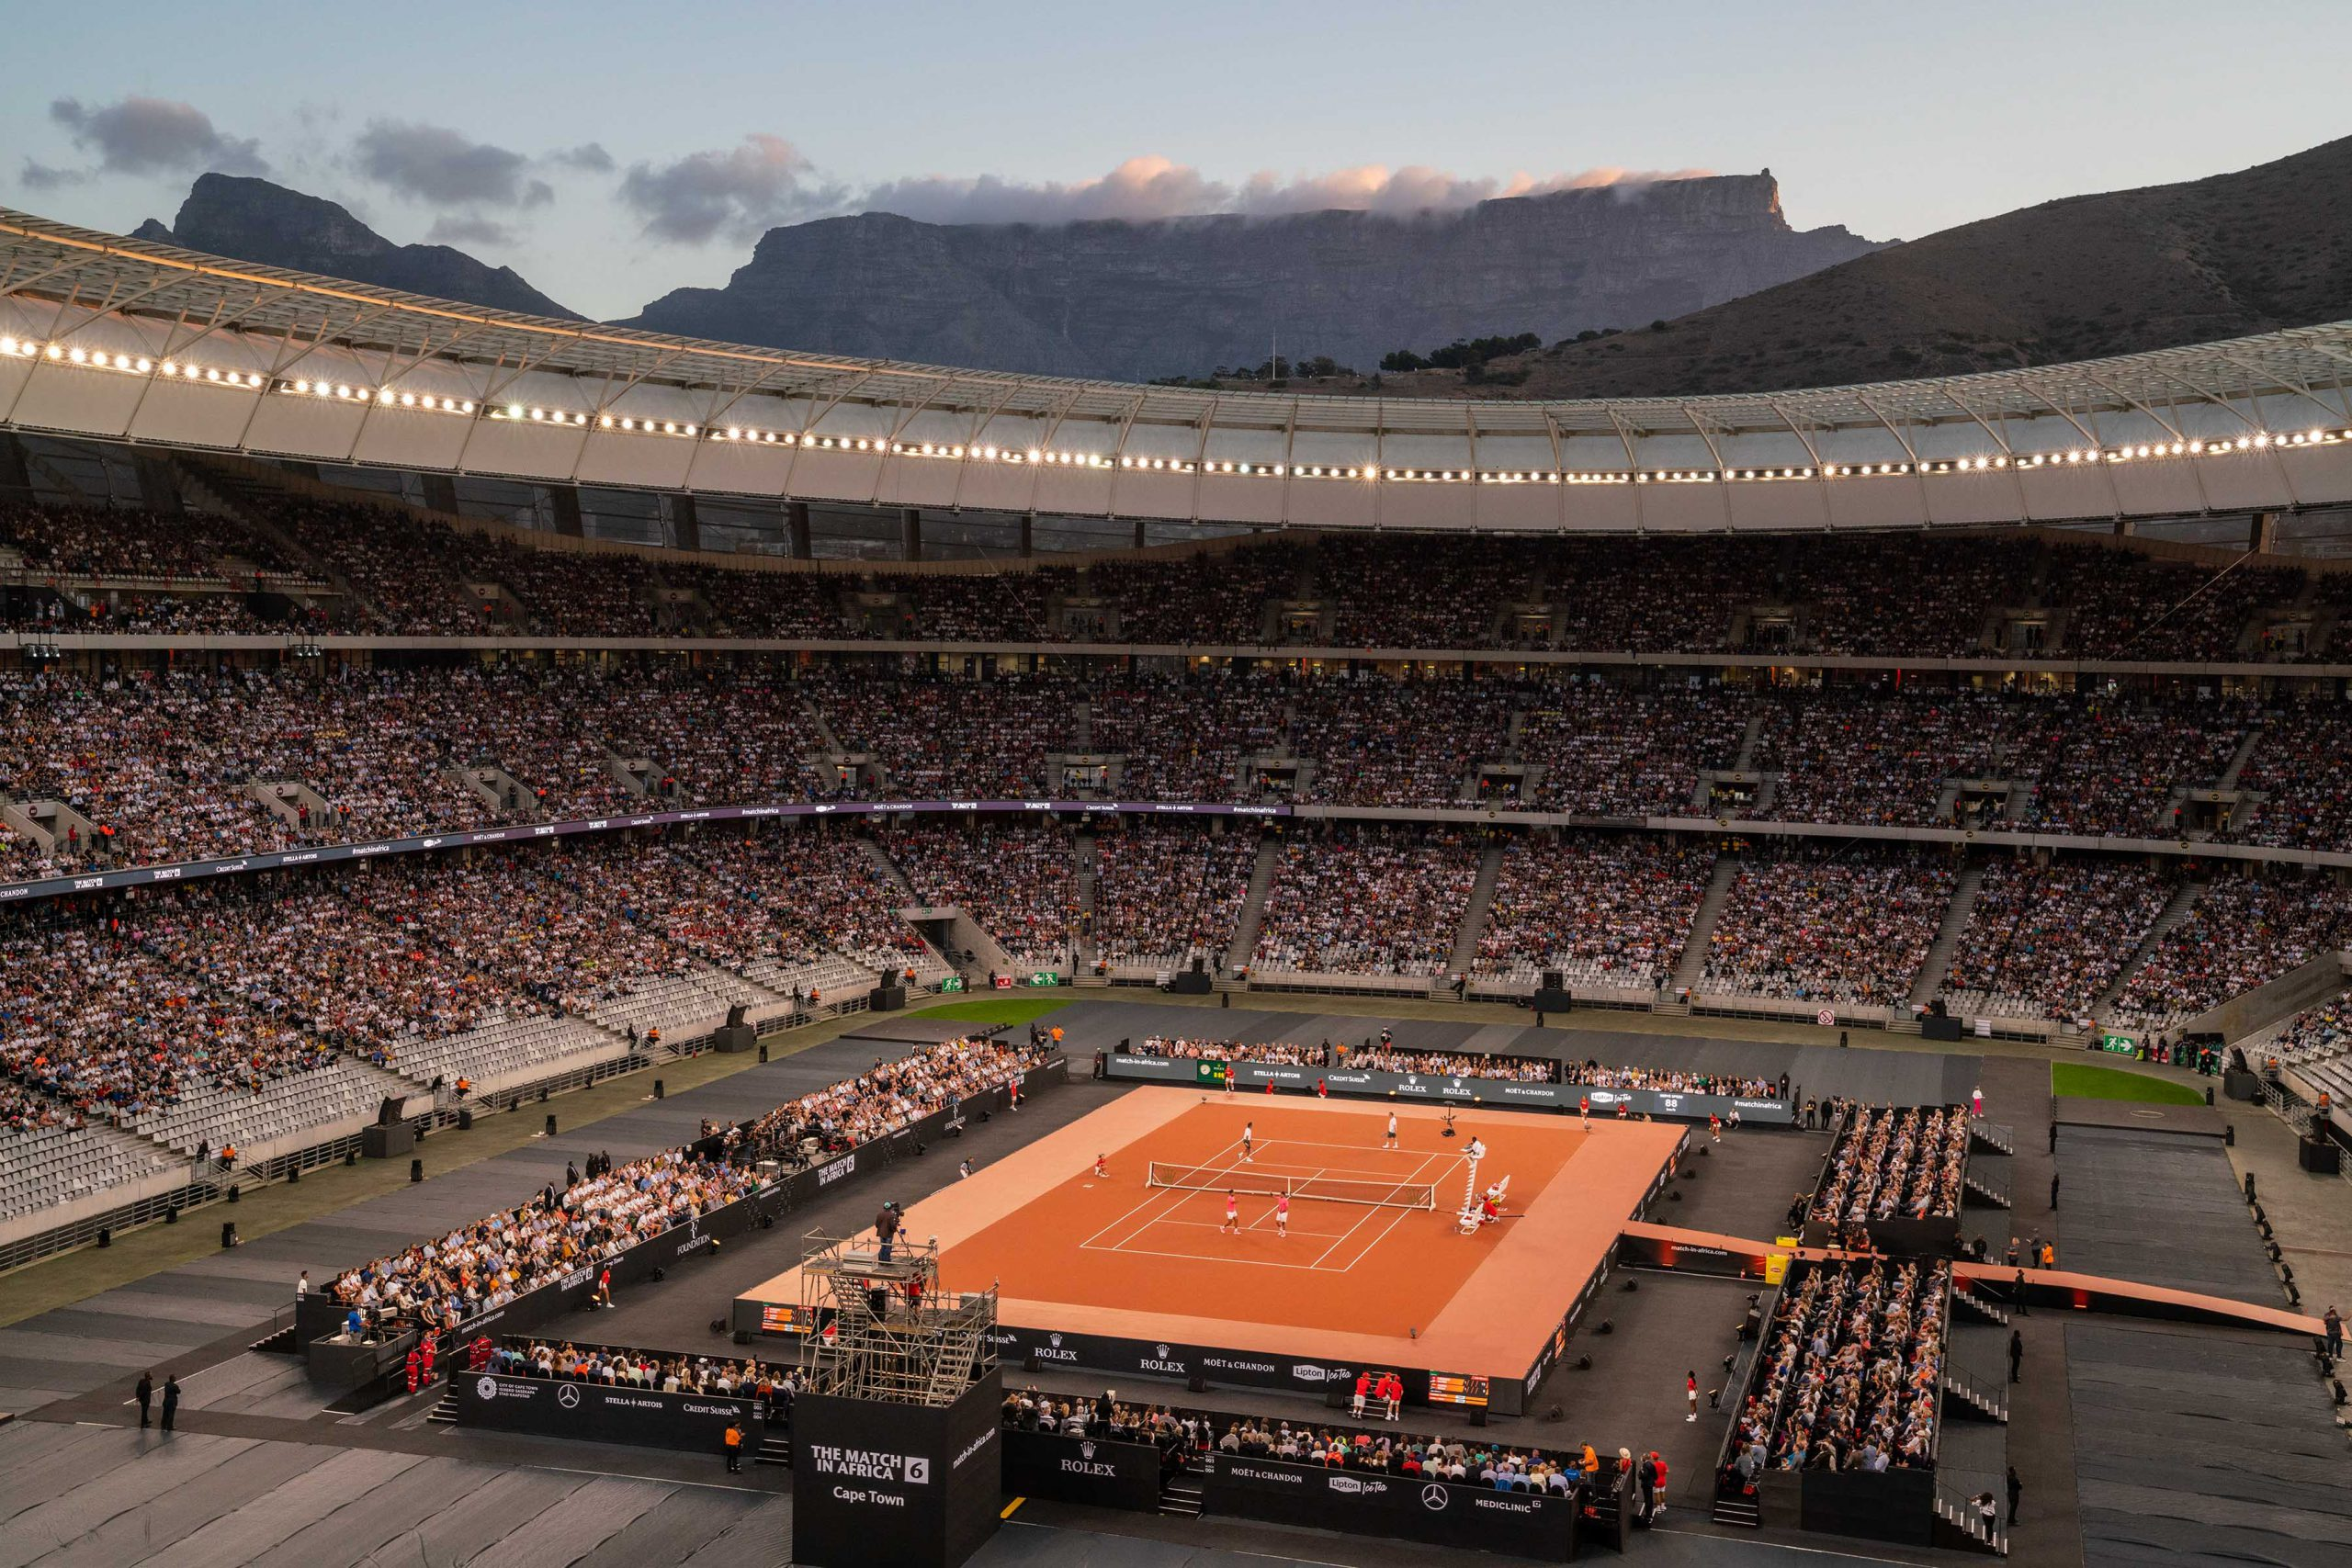 7 February 2020: The 50 000 audience members broke the record for the highest number of spectators at a tennis match.